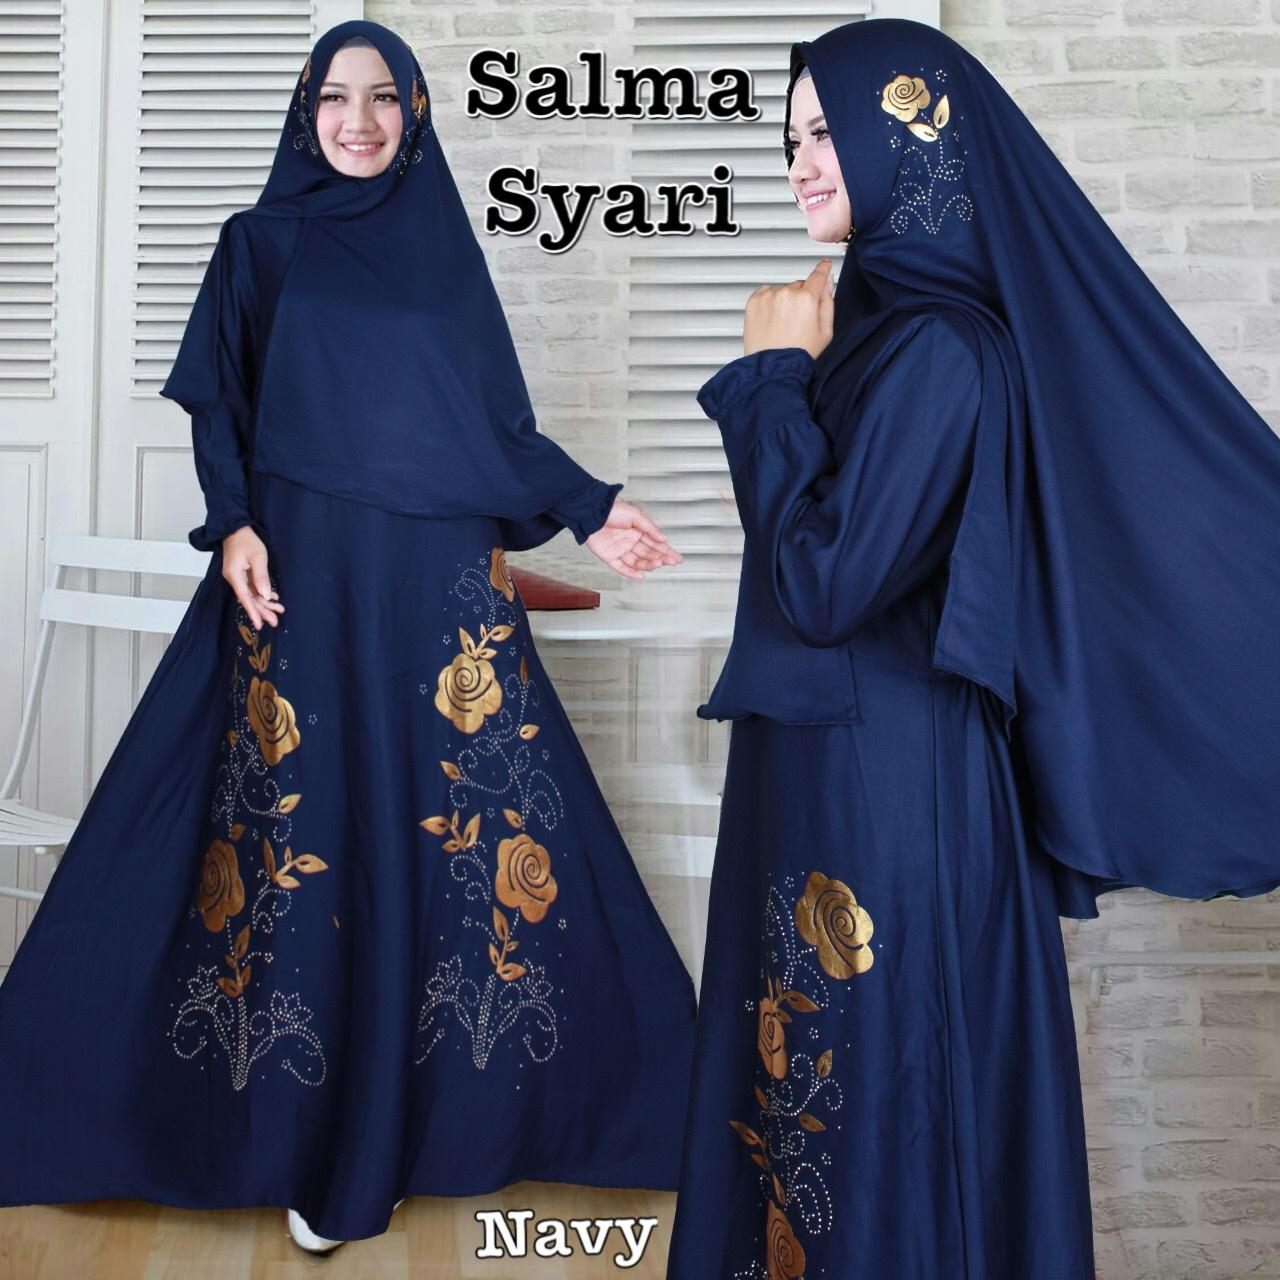 Komaya Fashion Kss 888 - Salma Syari Navy